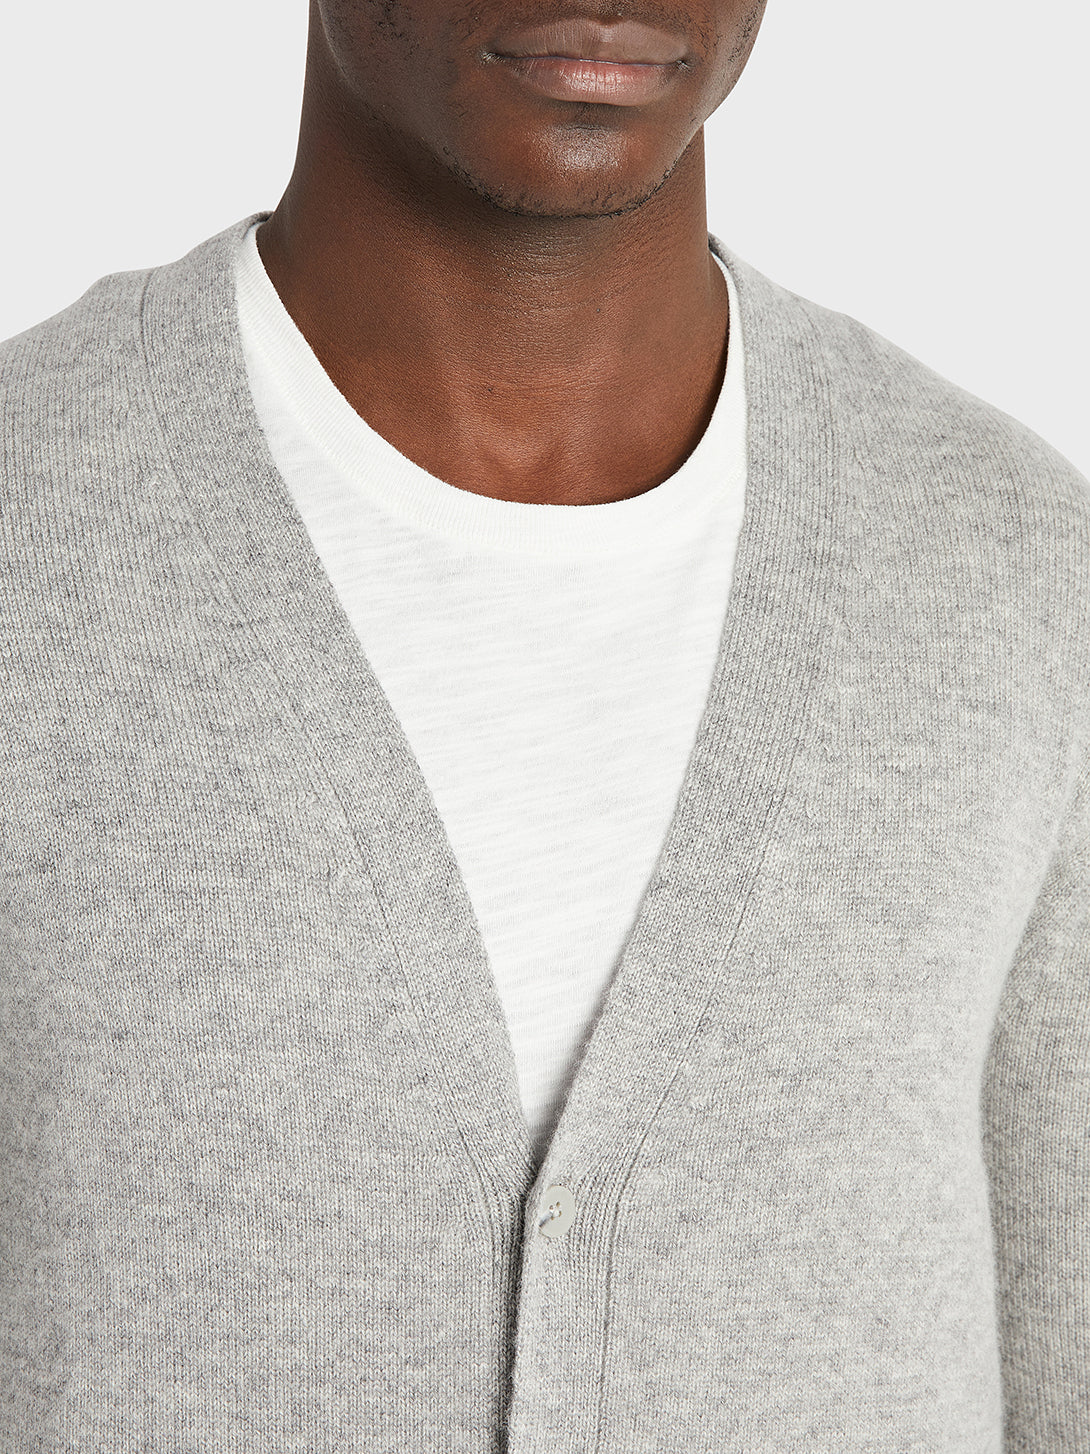 ONS Clothing Men's cardigan in GREY black friday deals